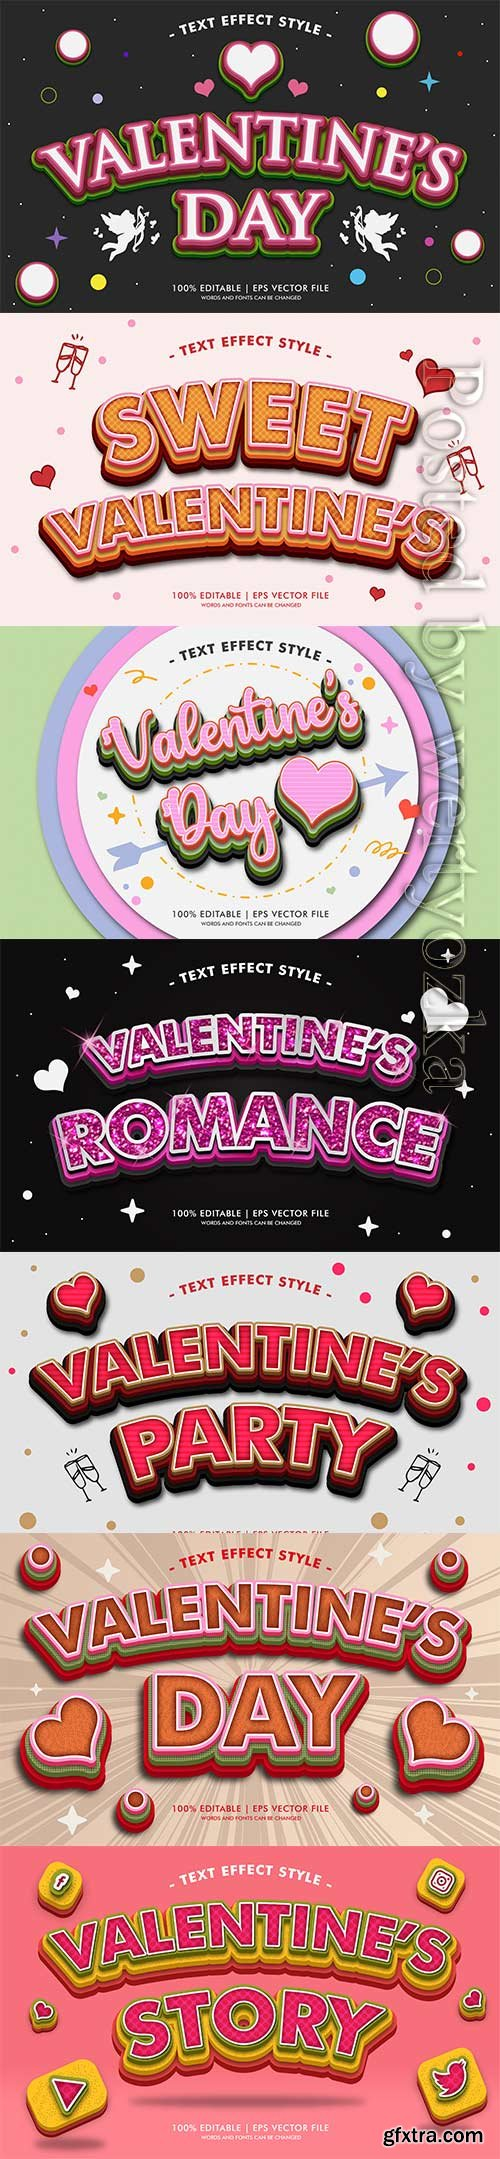 Valentine romance text effects style in vector